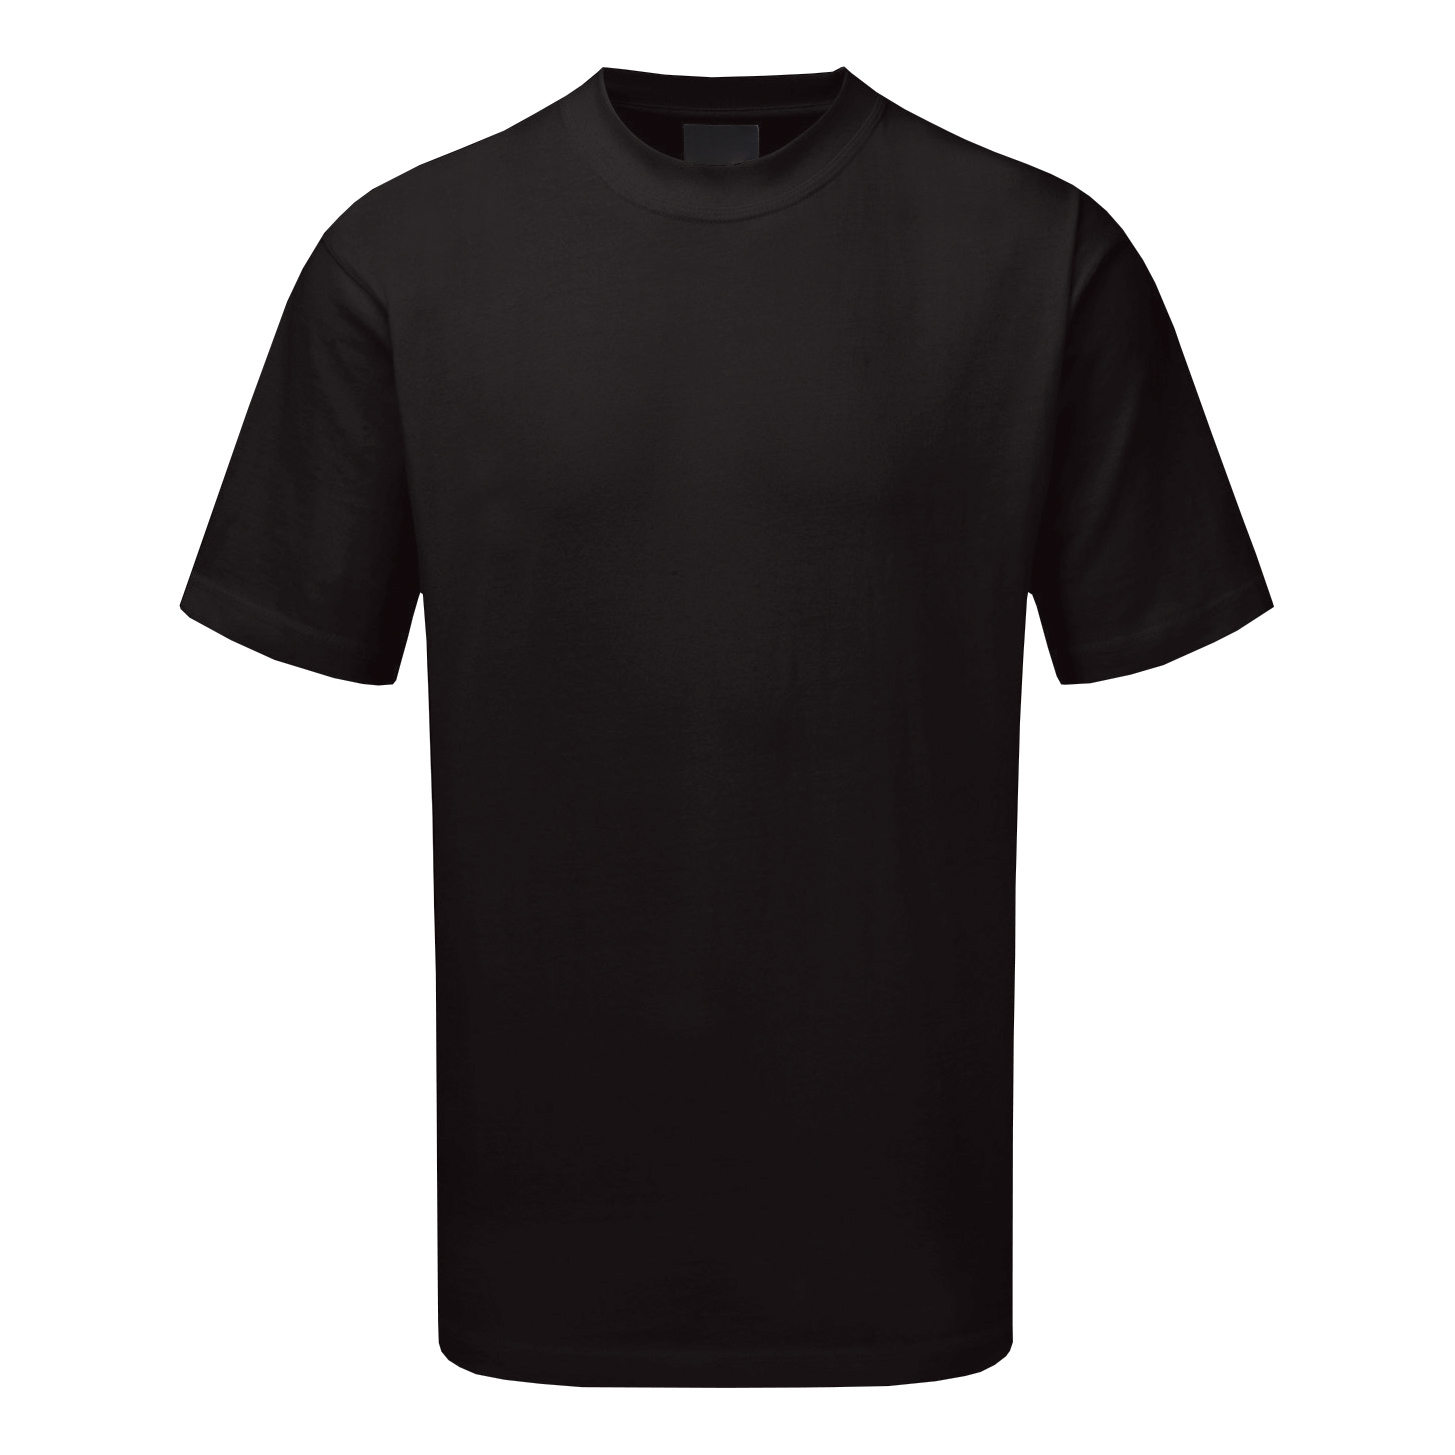 Premium T-Shirt Polycotton Triple Stitched Large Black